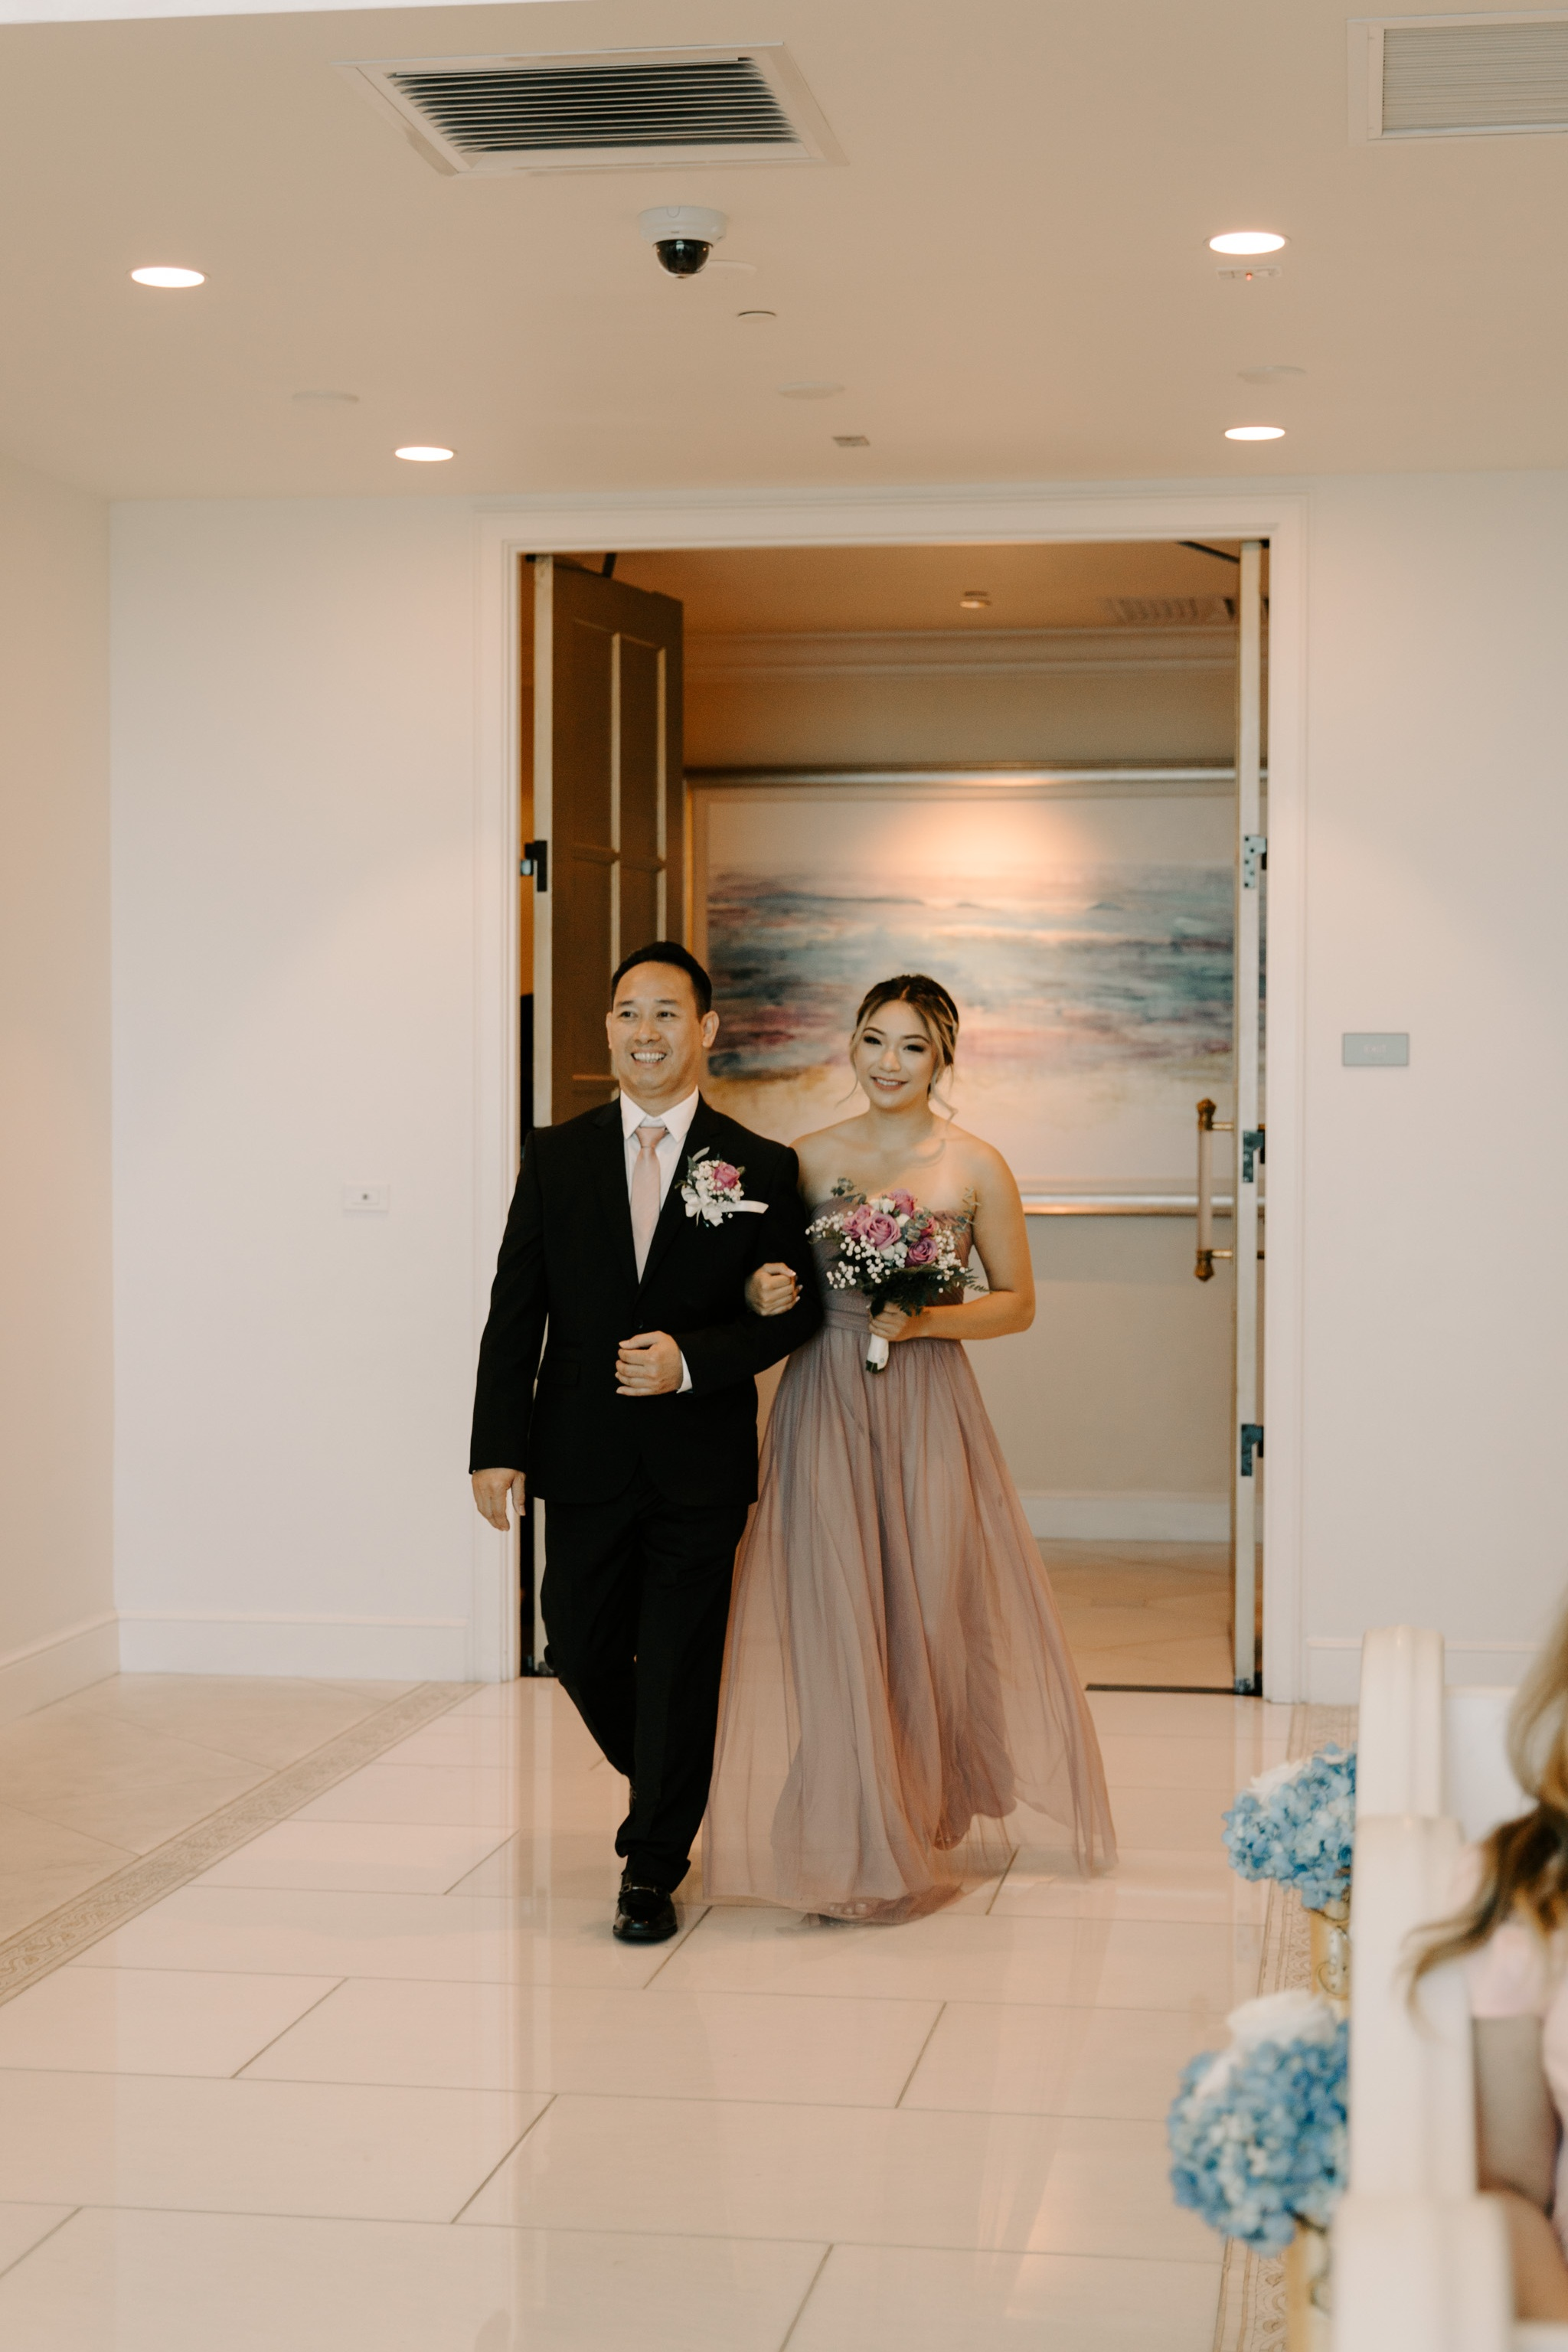 Bridesmaid and Groomsmen Walking Down the Aisle - 53 By The Sea Hawaii Wedding Naupaka Chapel By Oahu Wedding Photographer Desiree Leilani